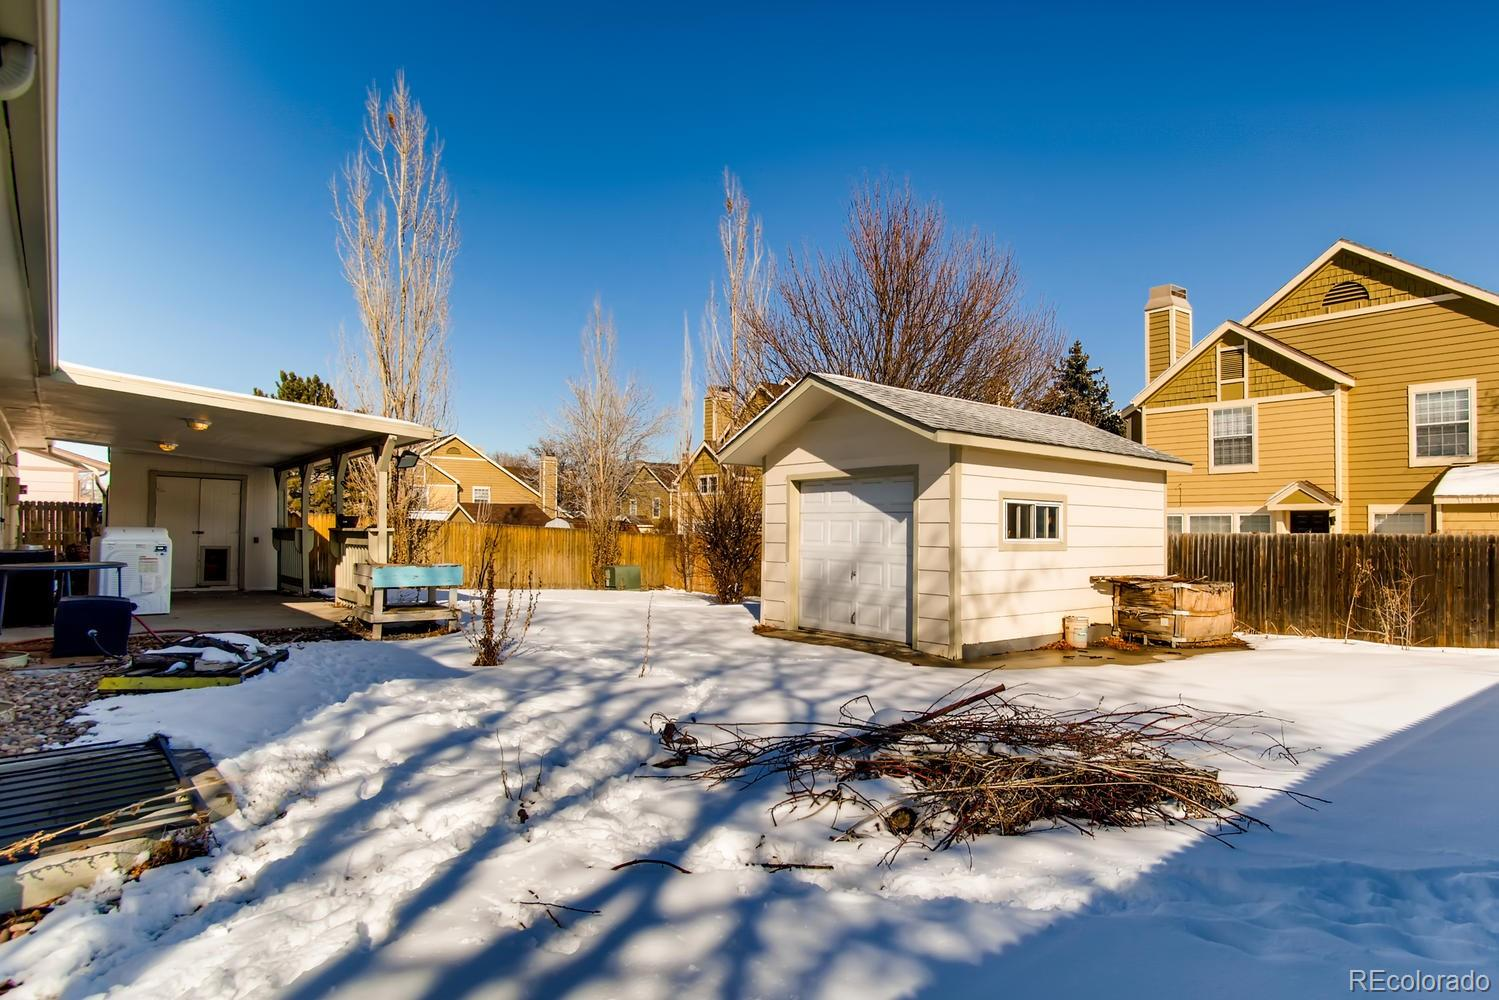 MLS# 7355353 - 26 - 3761 E 89th Place, Thornton, CO 80229